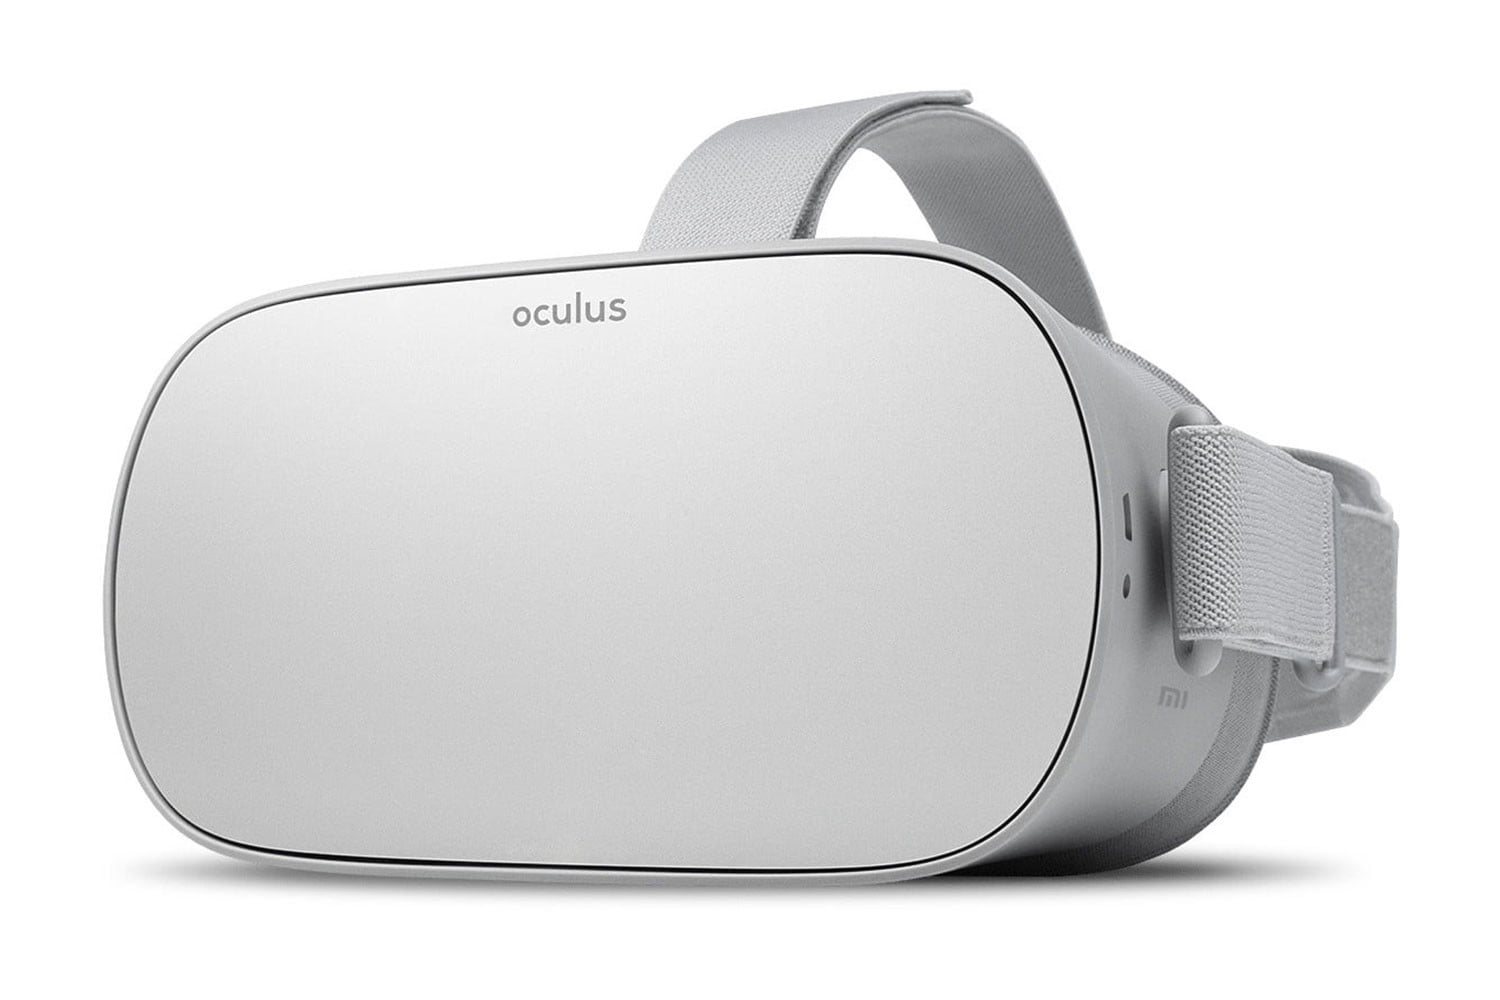 Oculus Go standalone VR headset permanently slashes price tag by $50 to $149